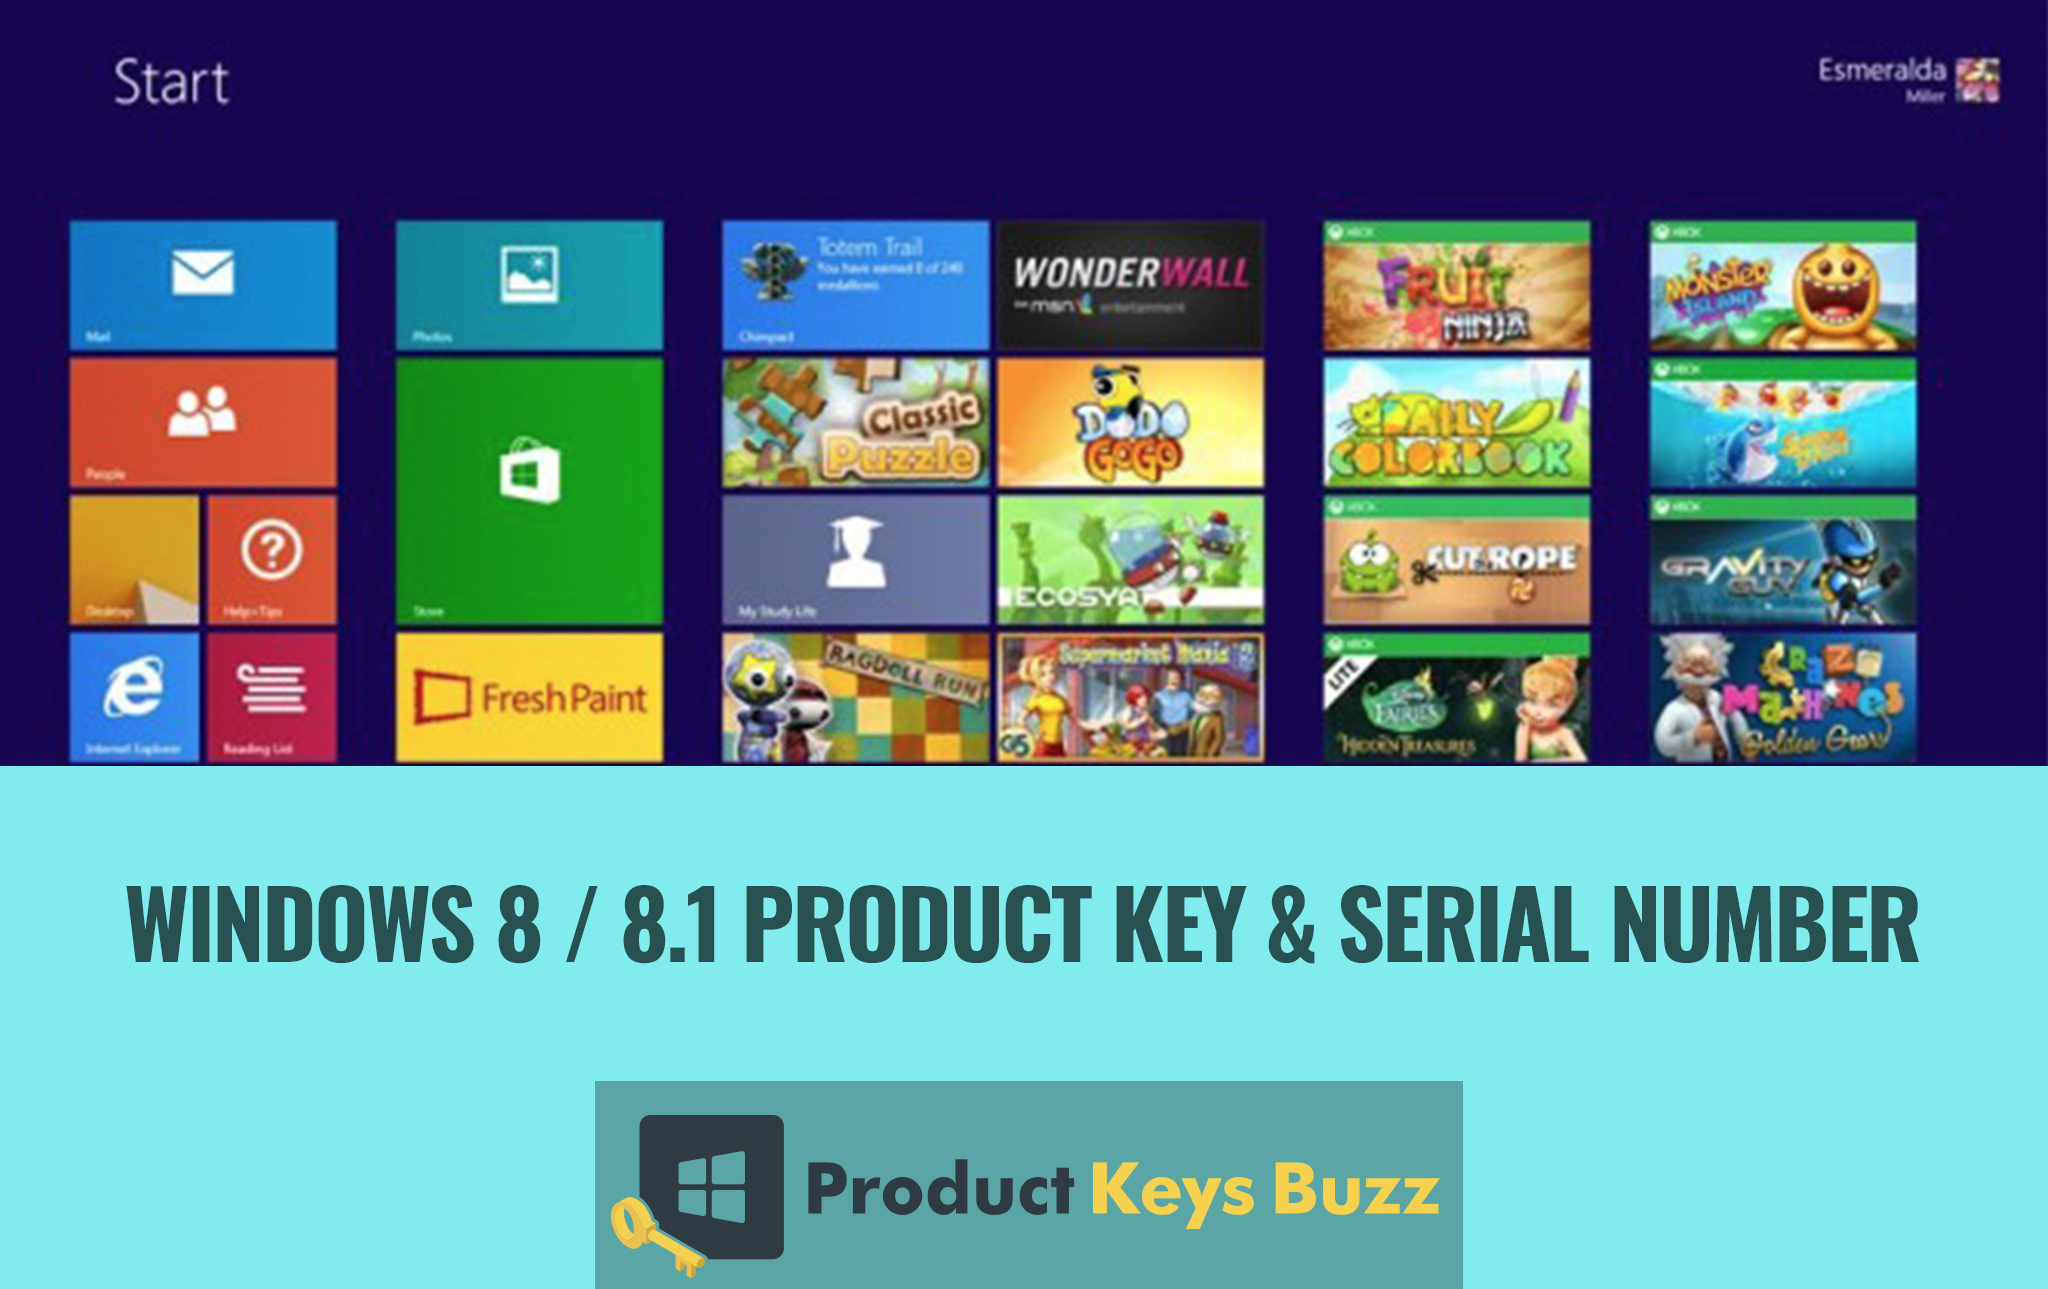 Windows 8.1 Product Key & Serial Number